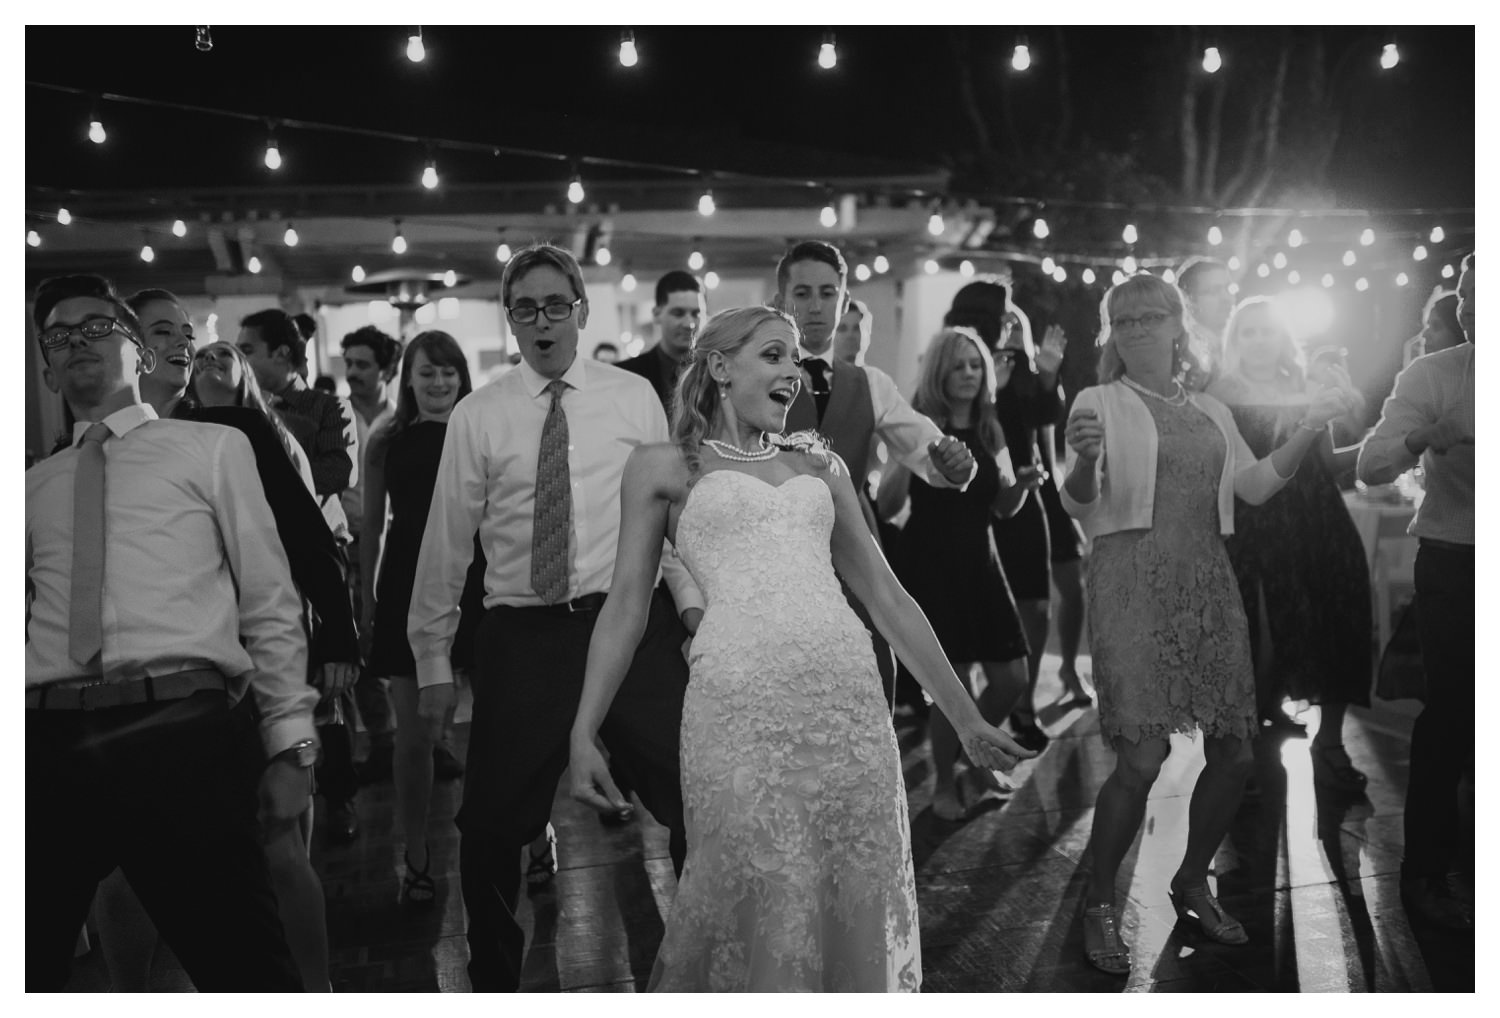 The bride and a following crowd do the Bernie dance during the reception.